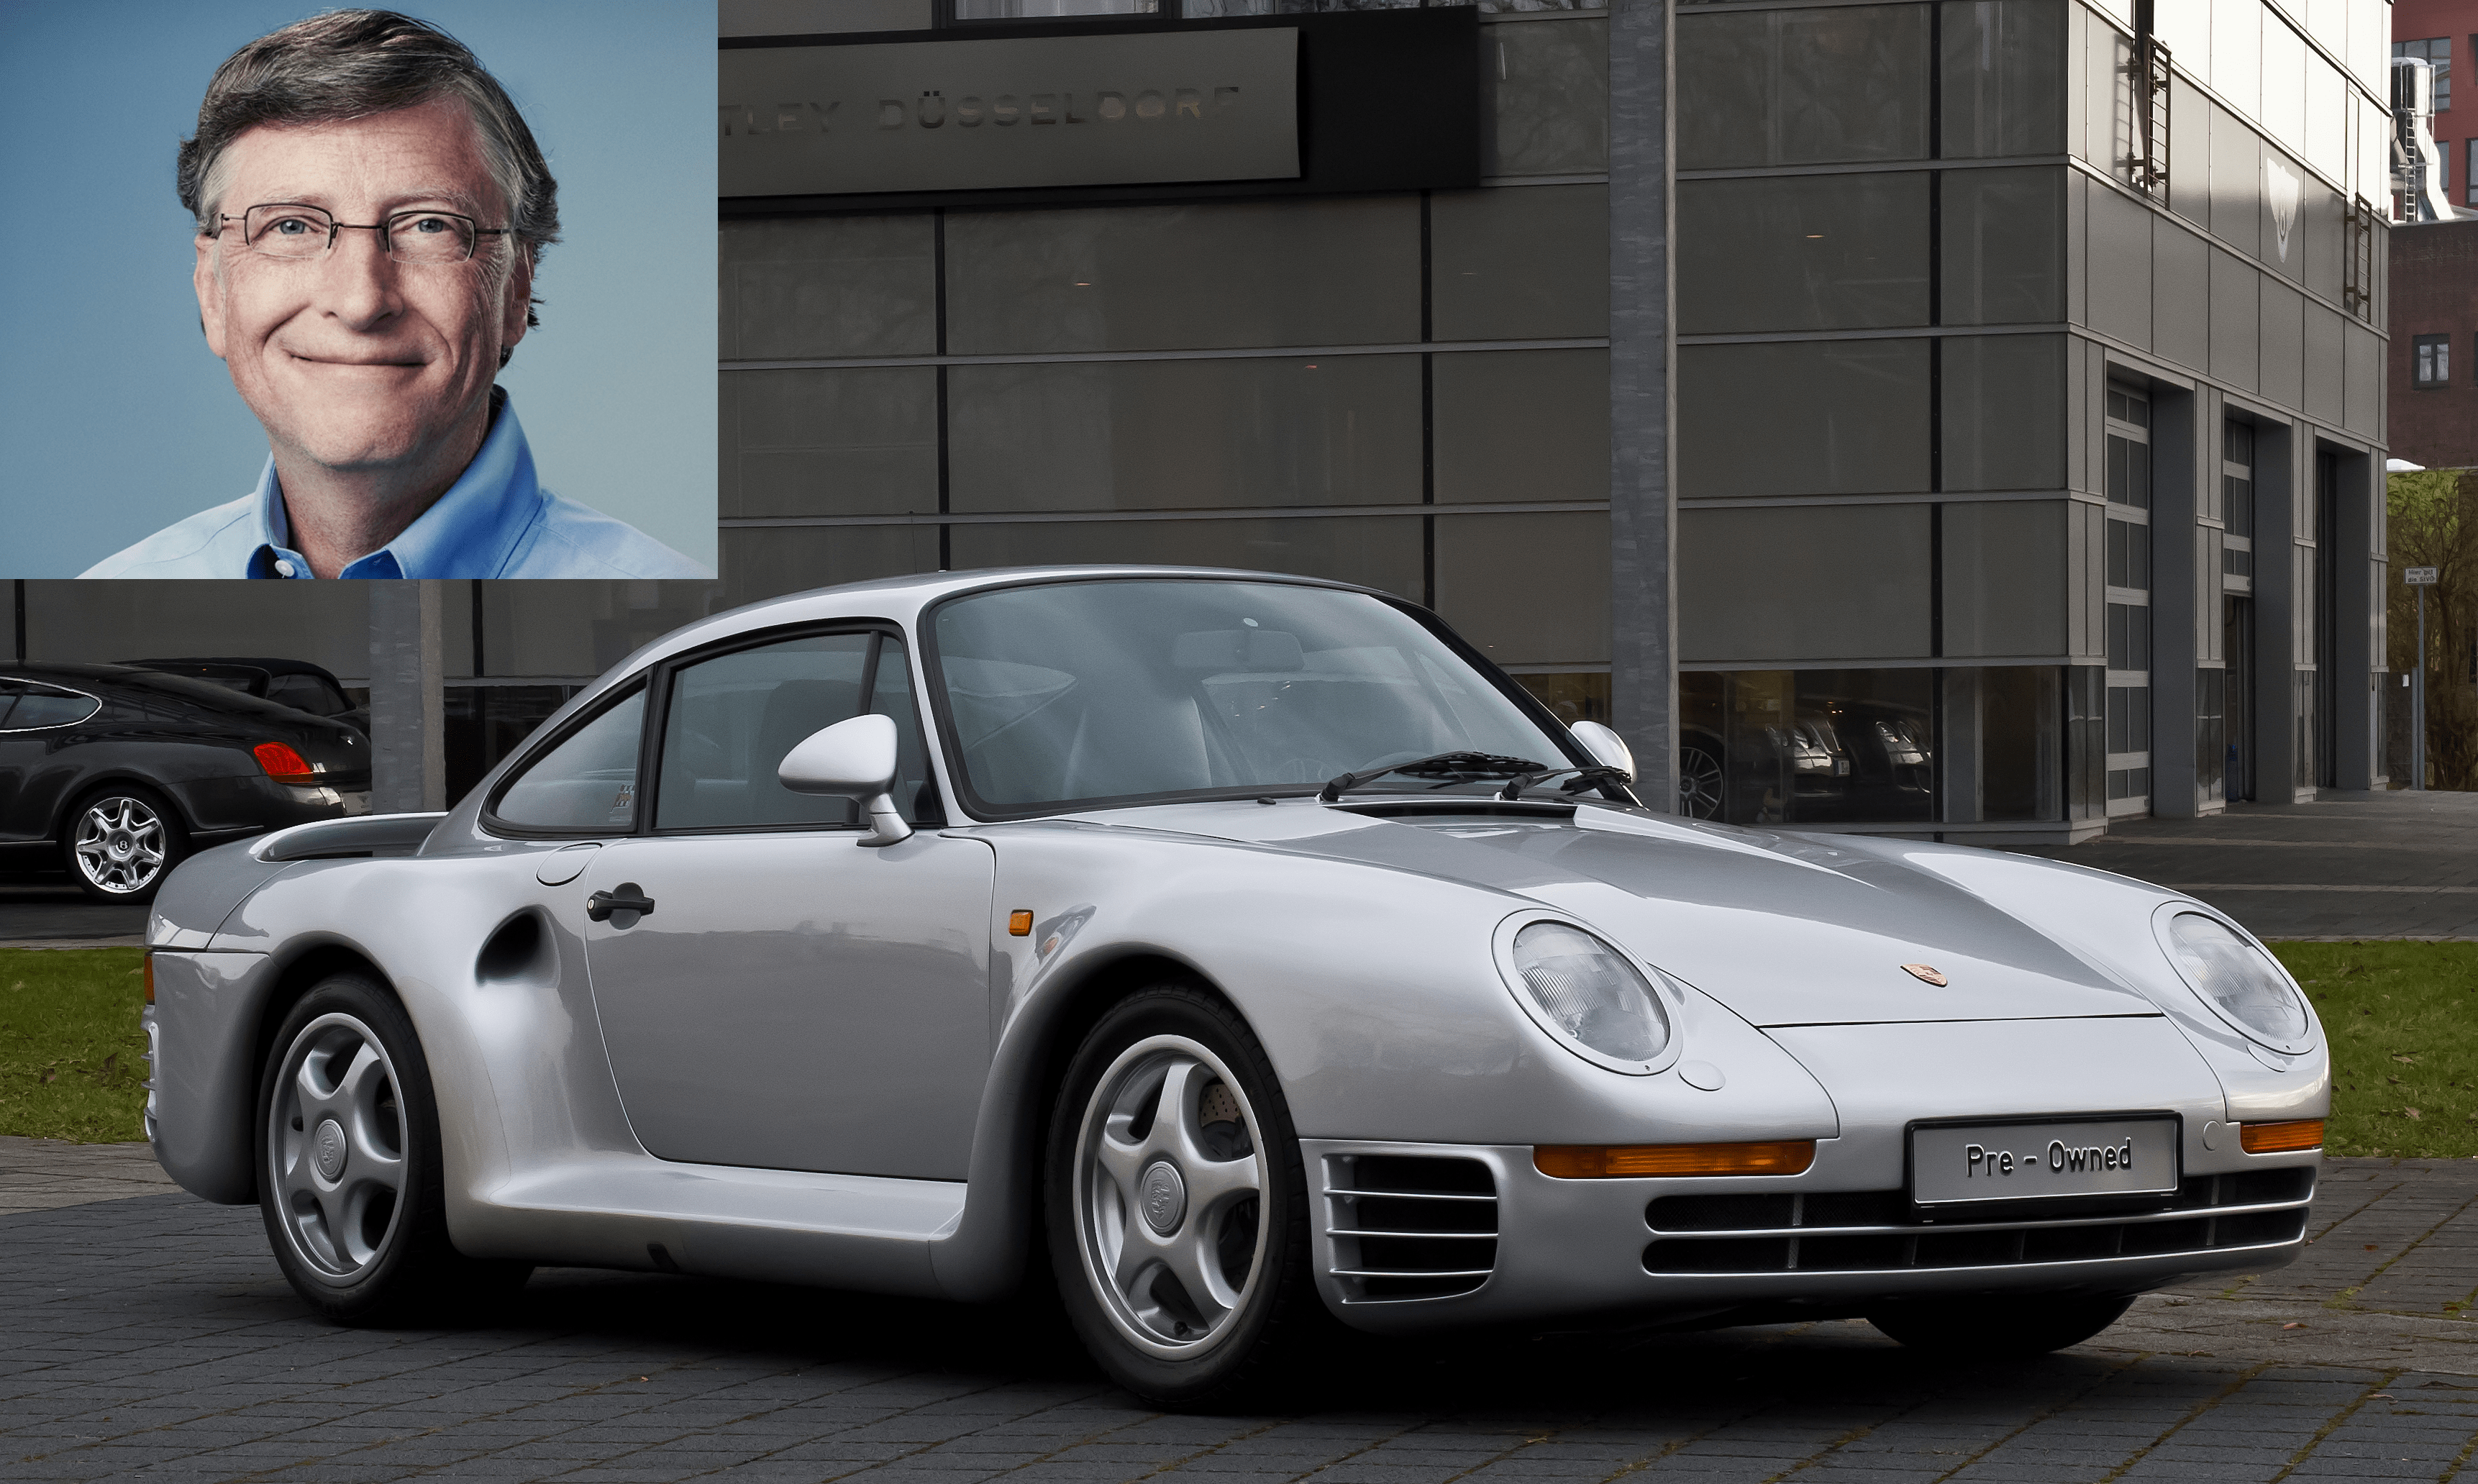 Speaking of cars, Gates has quite the Porsche collection. The headliner is his Porsche 959 sports car, which he bought 13 years before the car was approved by the US Environmental Protection Agency or US Department of Transportation.